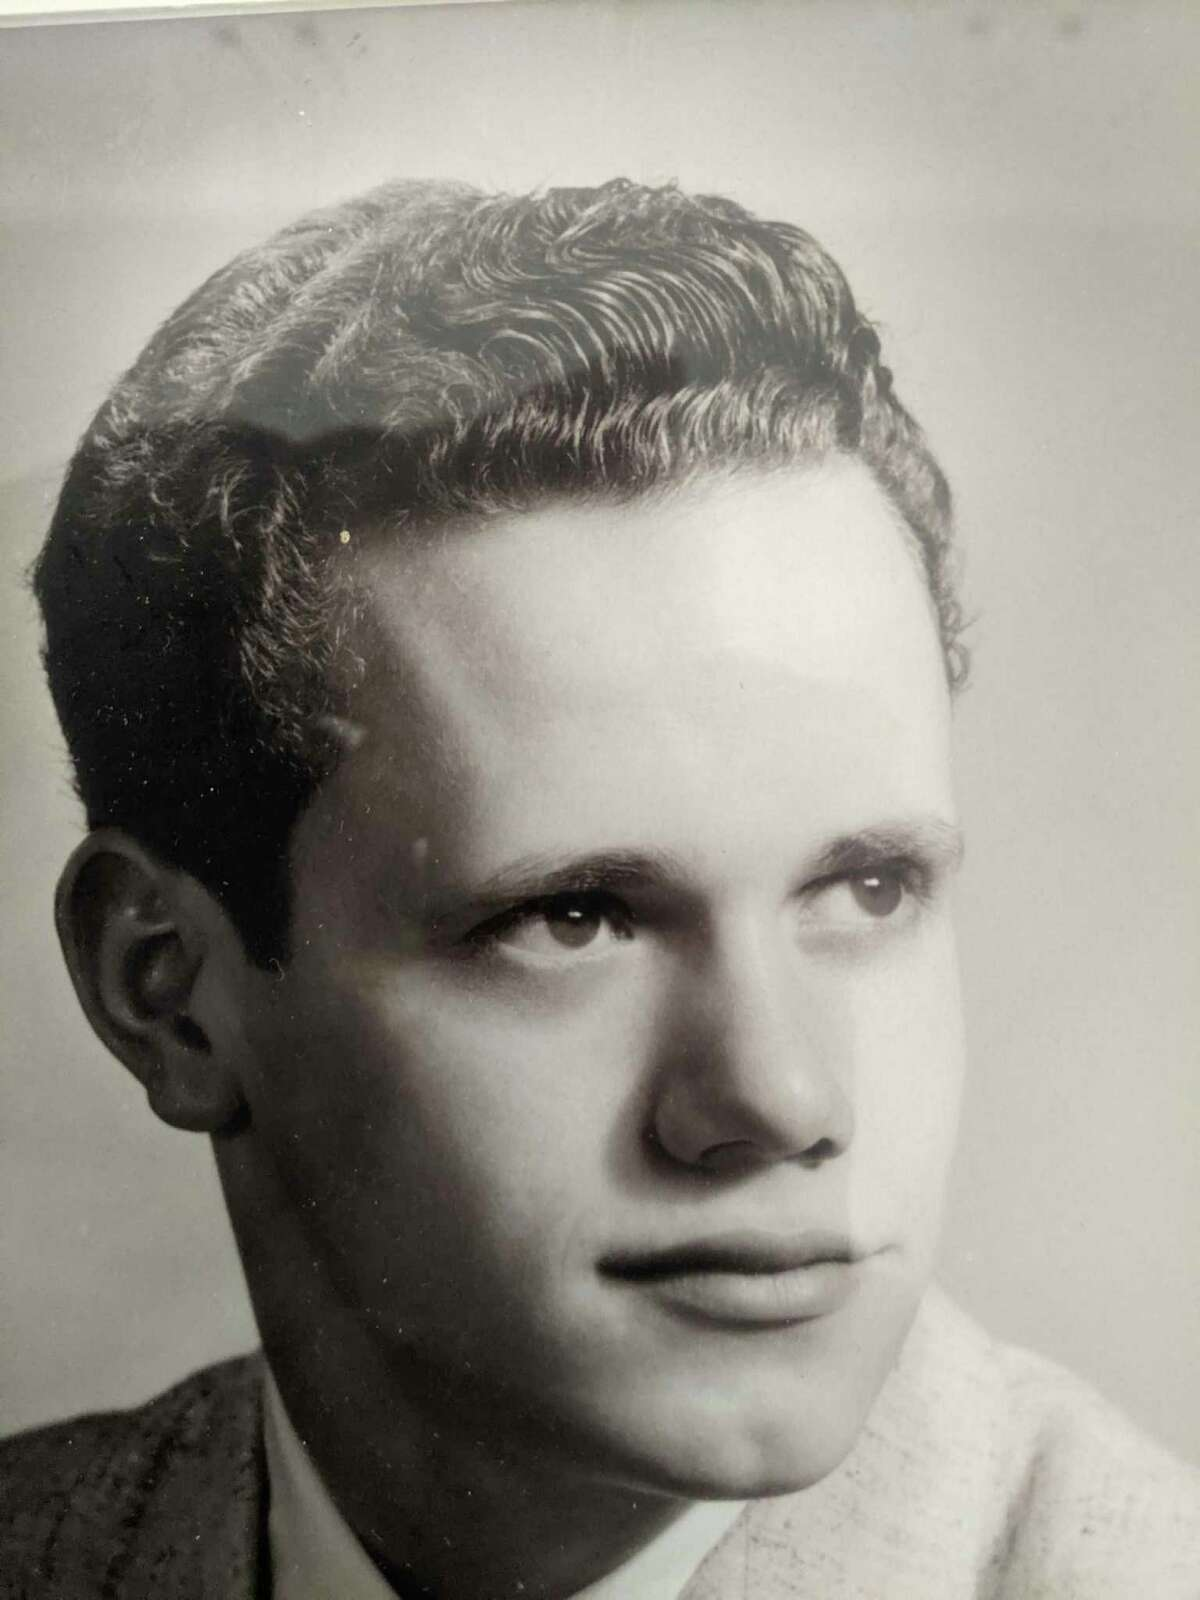 Ted Eastman poses for his high school yearbook photo in 1956. The young woman he would marry in 1958, Marge Melchi, also graduated in 1956.